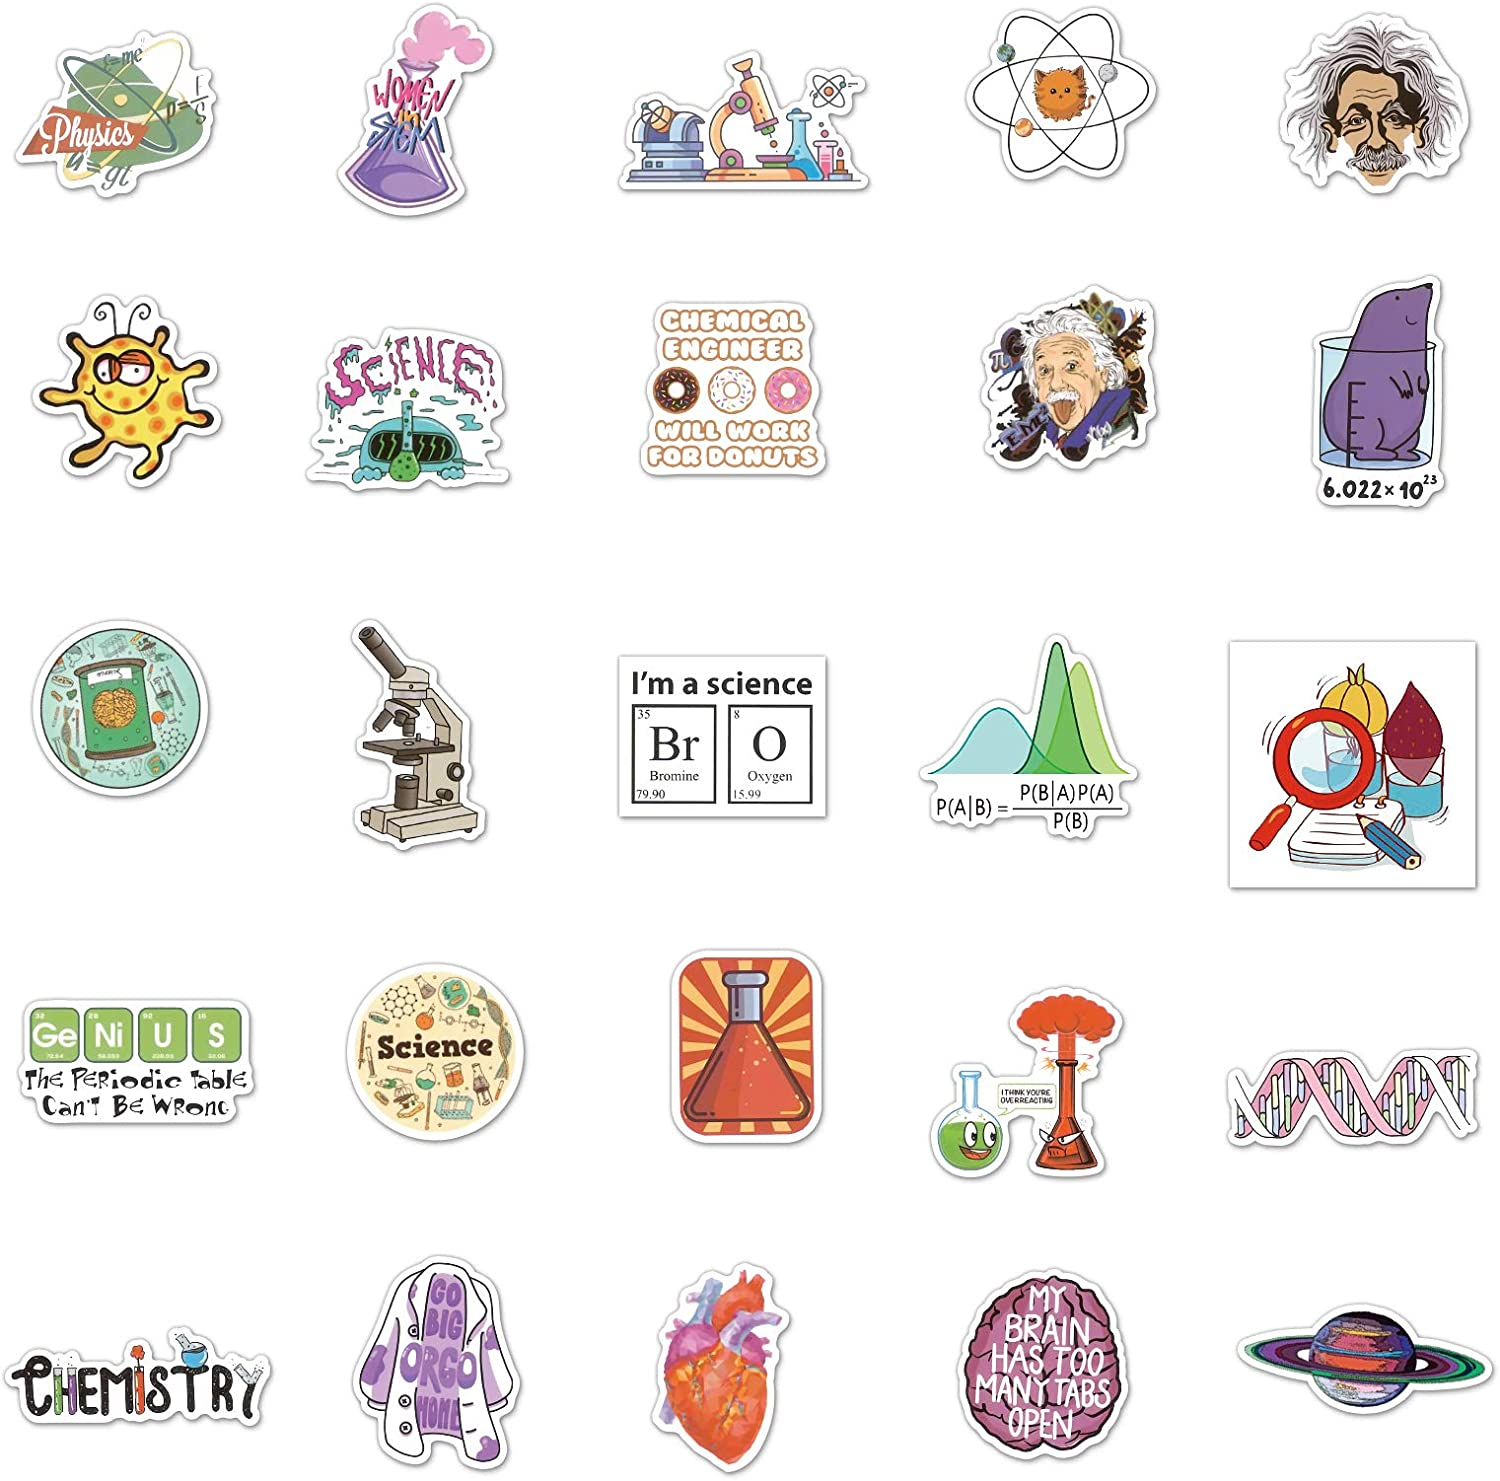 Science Experienment Stickers 100PCS Funny Chemistry Physics Biology Laboratory Students and Kids Decals for Book Bumper Cars Bag Luggage Skateboard Water Bottle Bicycle Pencil Case Lab Vinyl Gifts